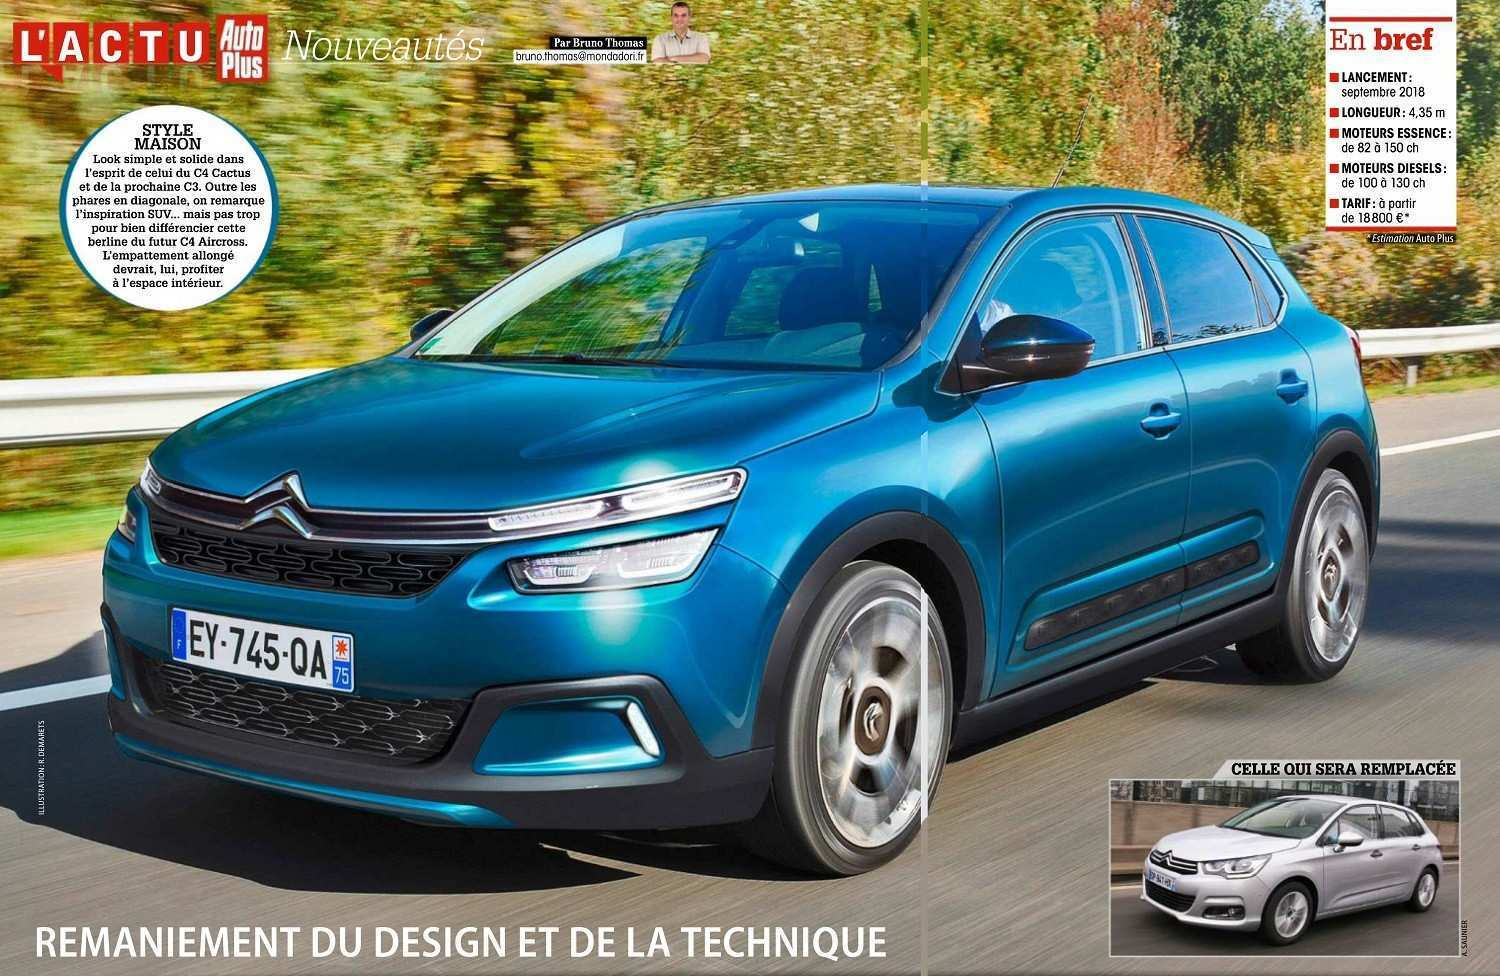 90 Concept of 2020 New Citroen C4 2018 Speed Test with 2020 New Citroen C4 2018